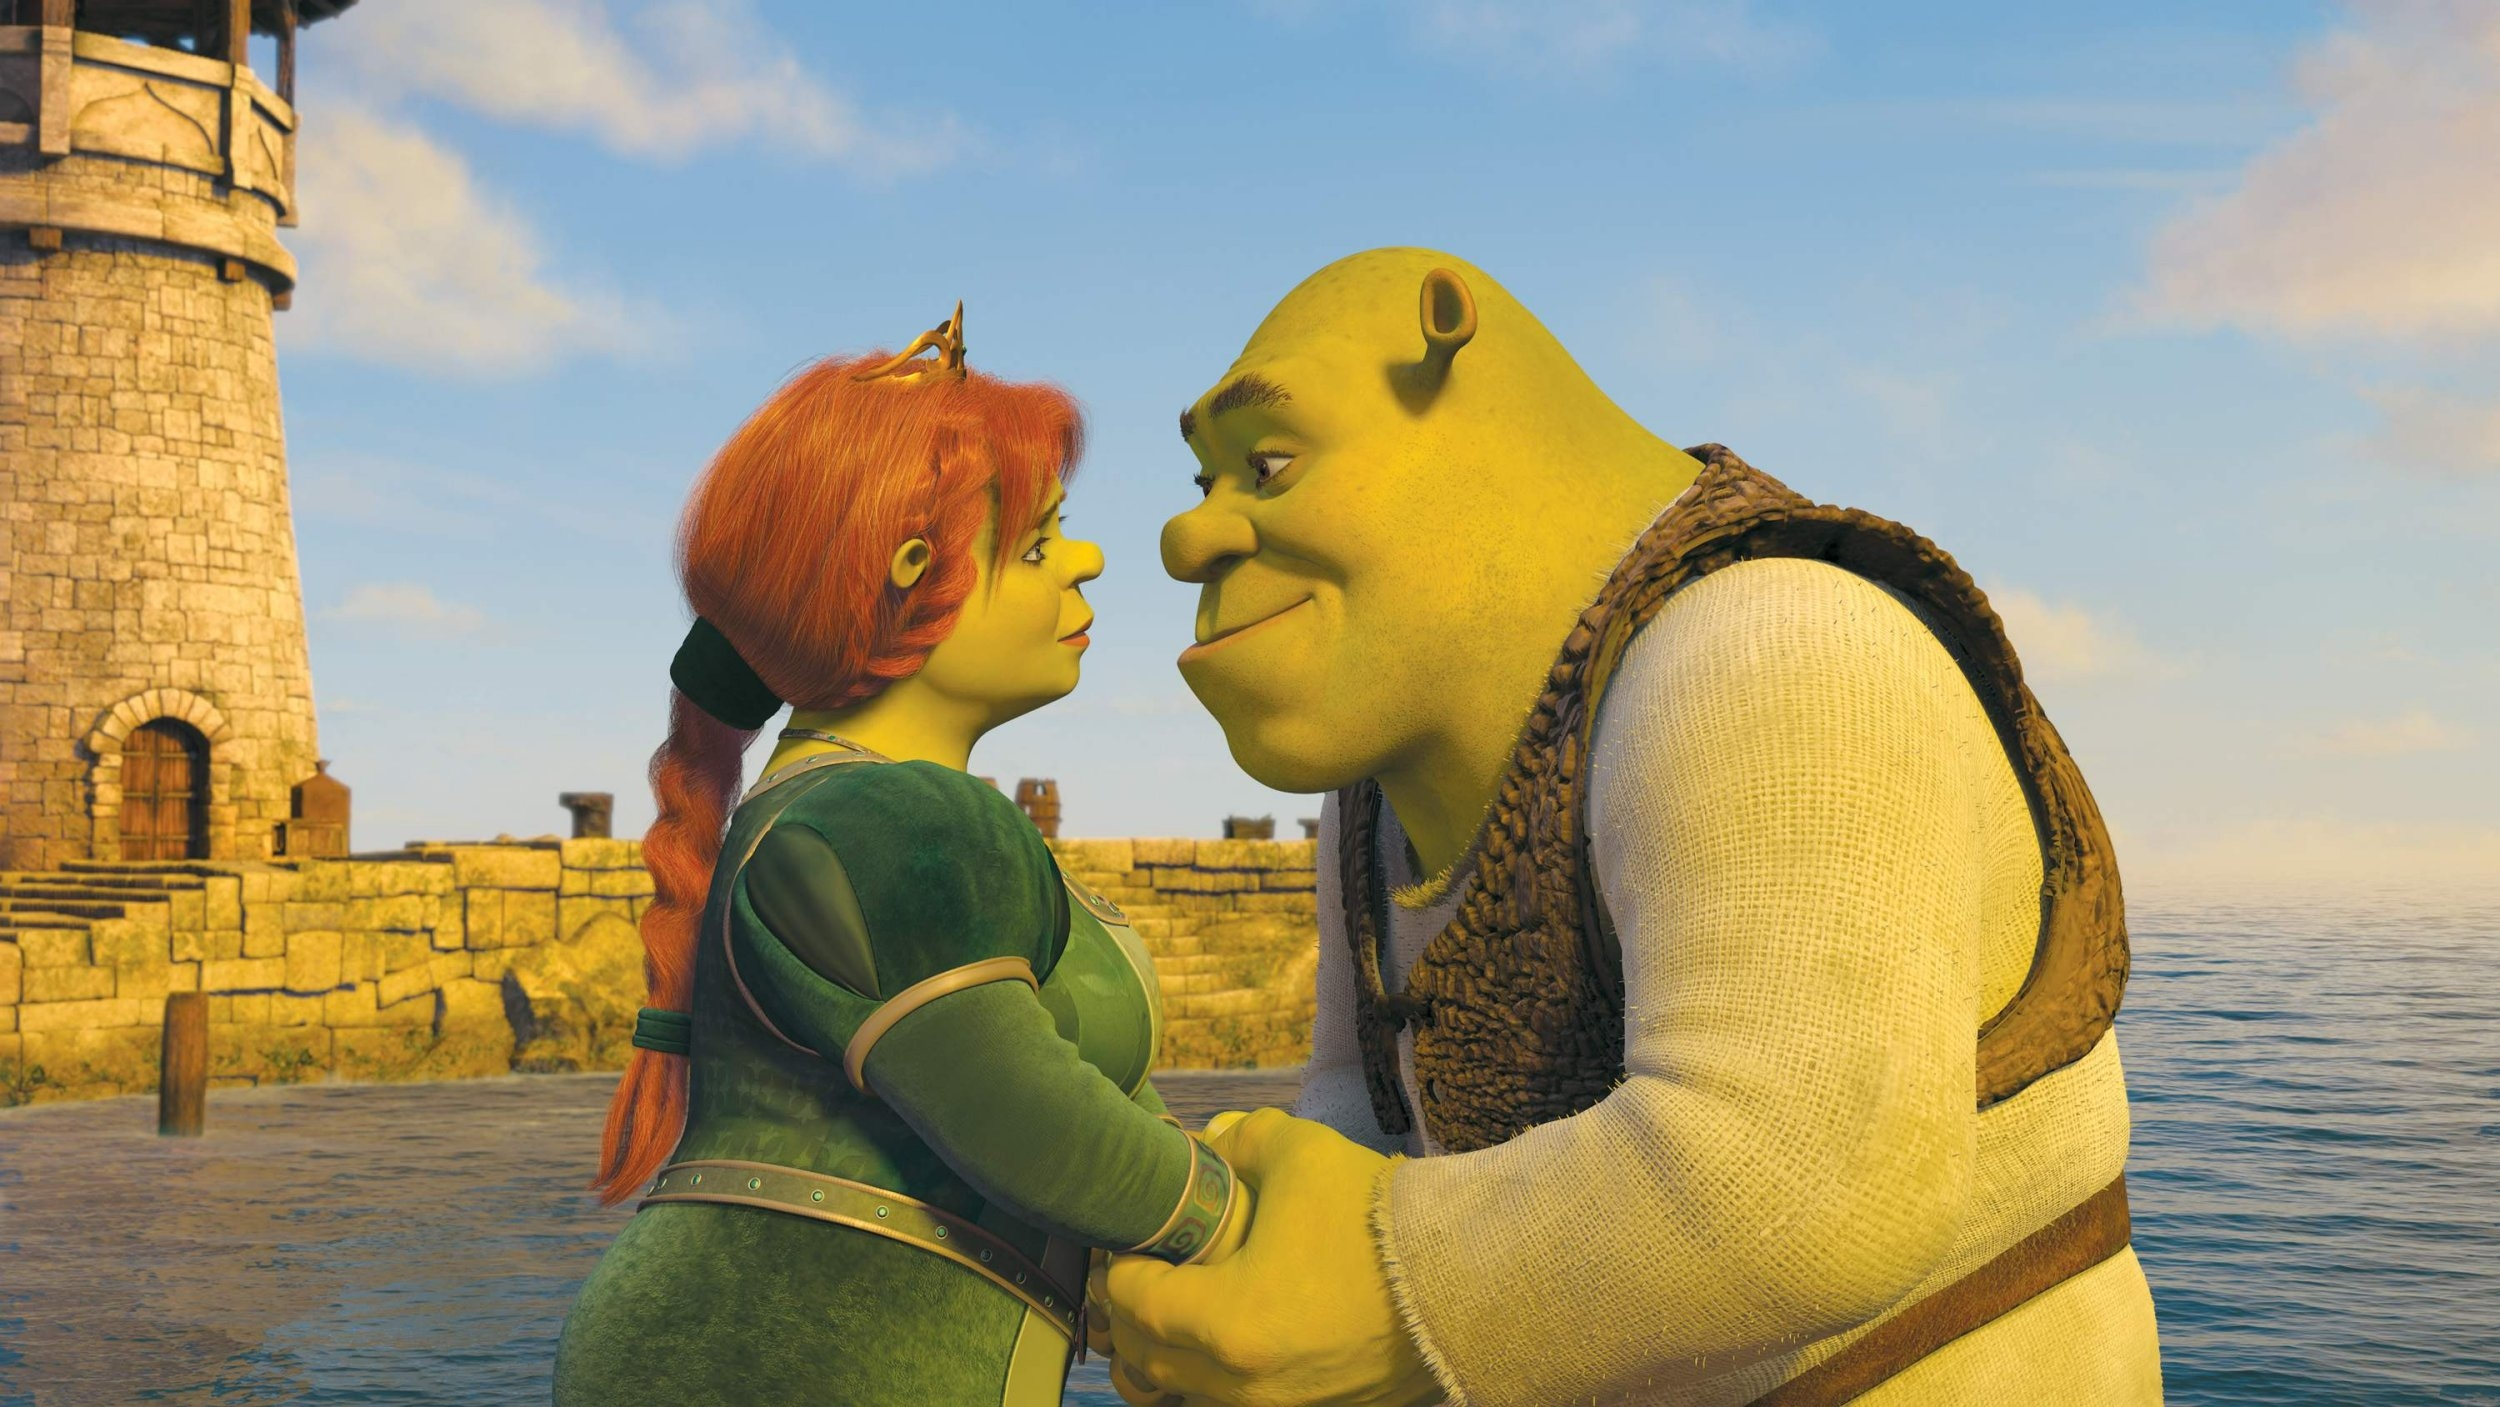 File:Shrek and fiona.jpg